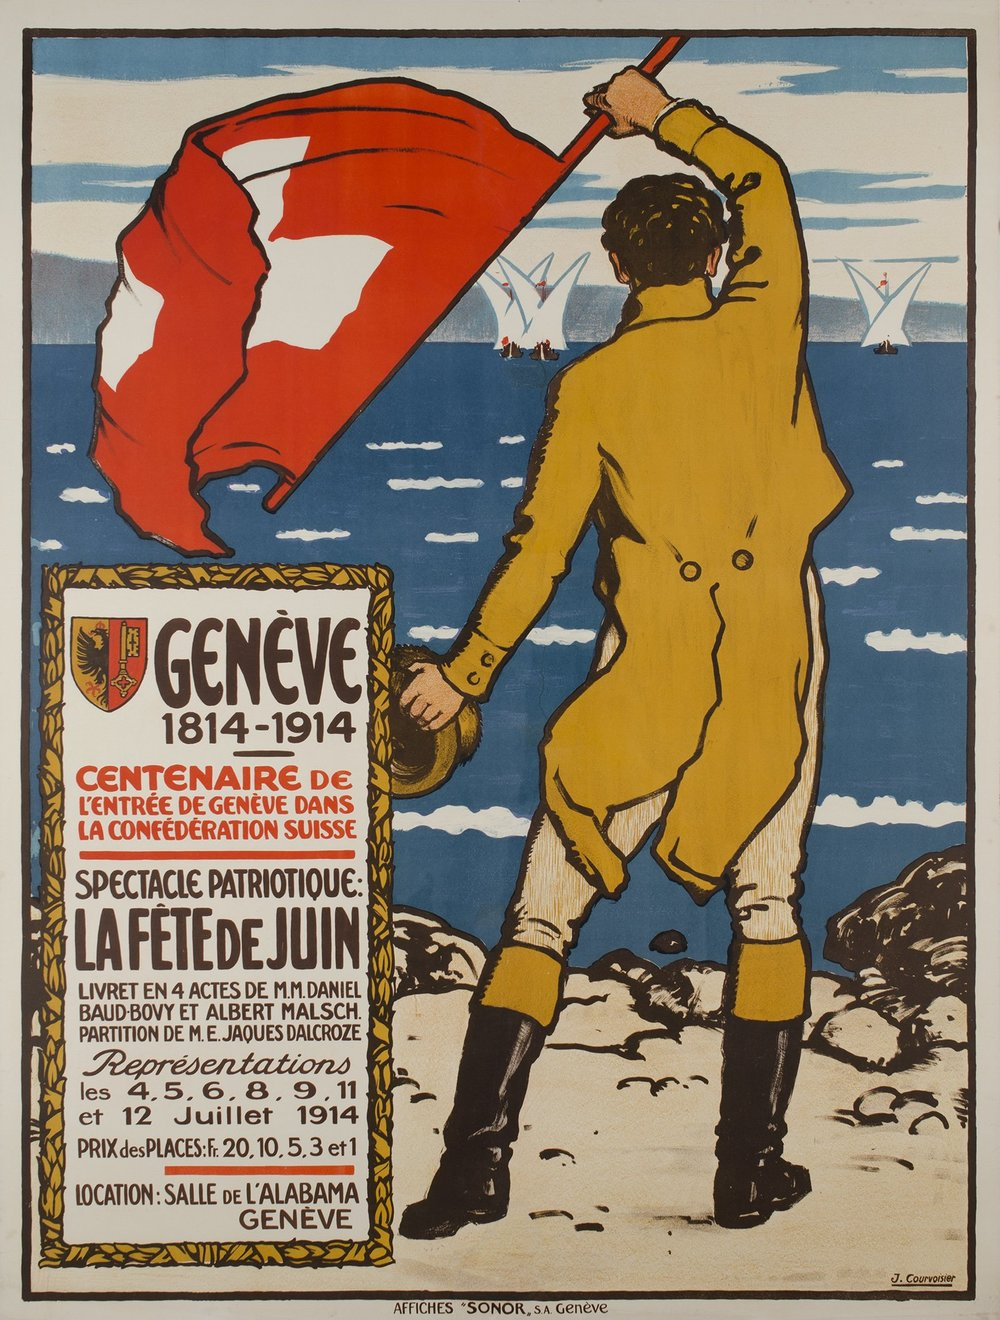 Vintage poster of Geneva: Lac Léman and sail boats.